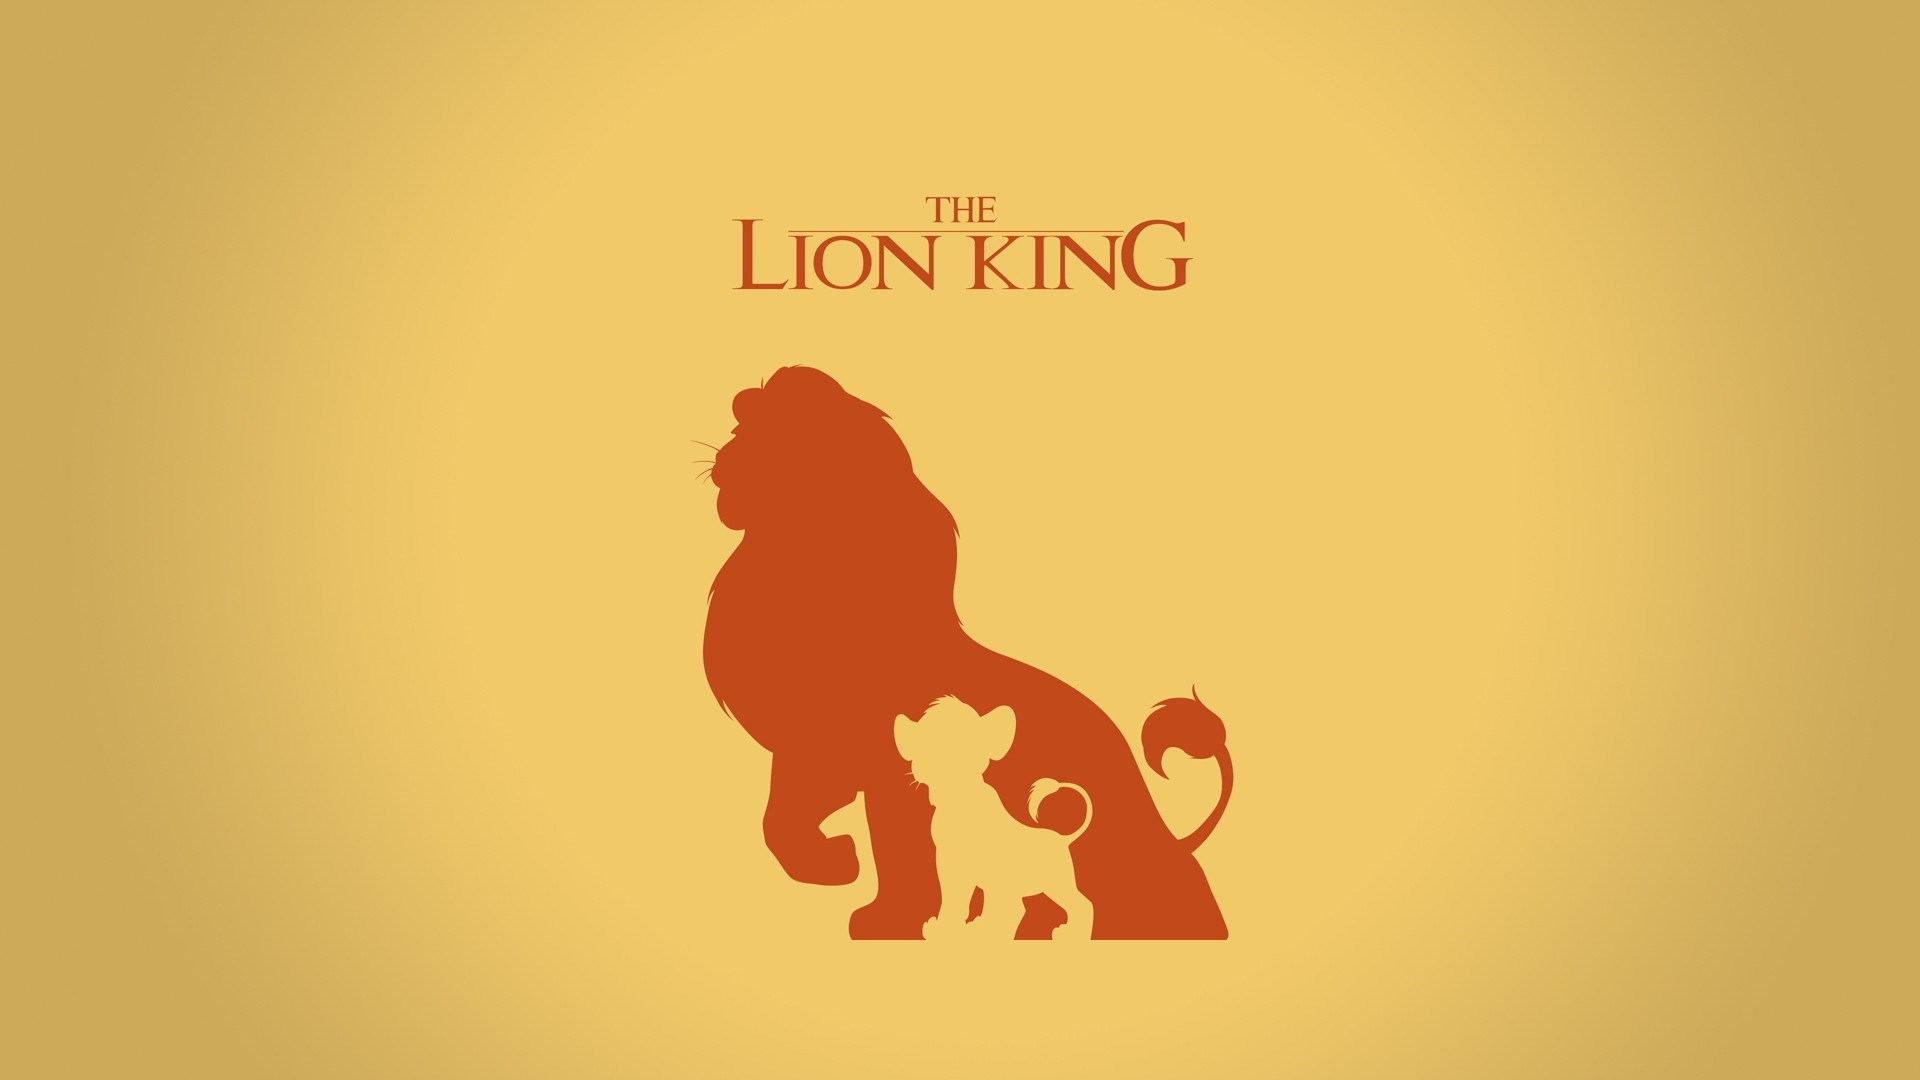 The Lion King Art